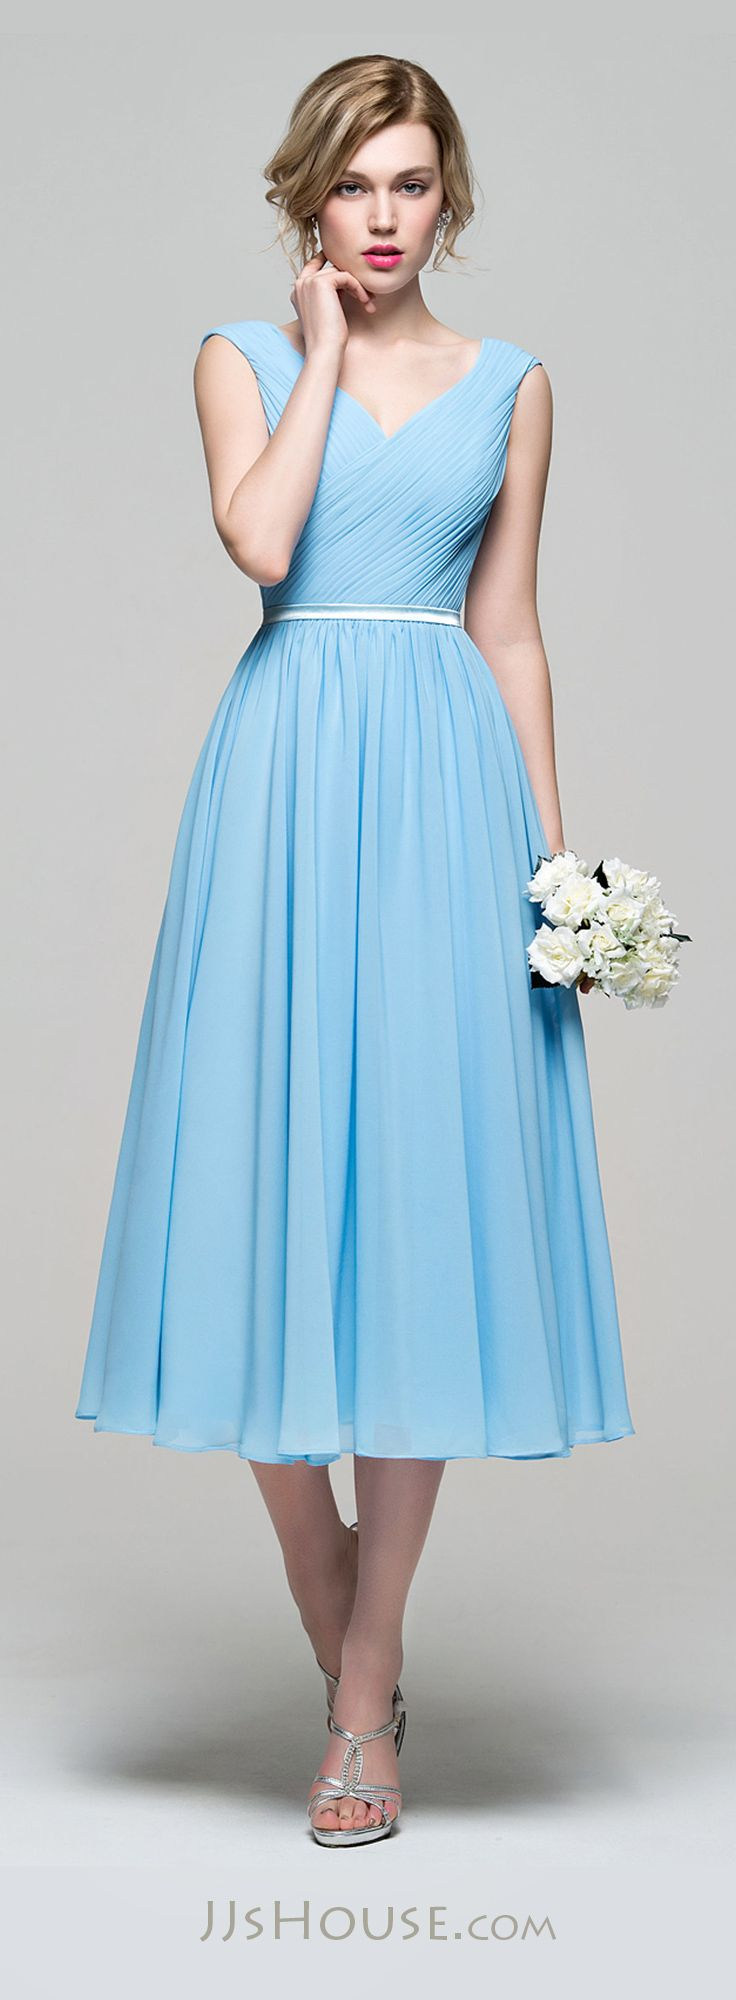 A-Line/Princess V-neck Tea-Length Chiffon Bridesmaid Dress With ...